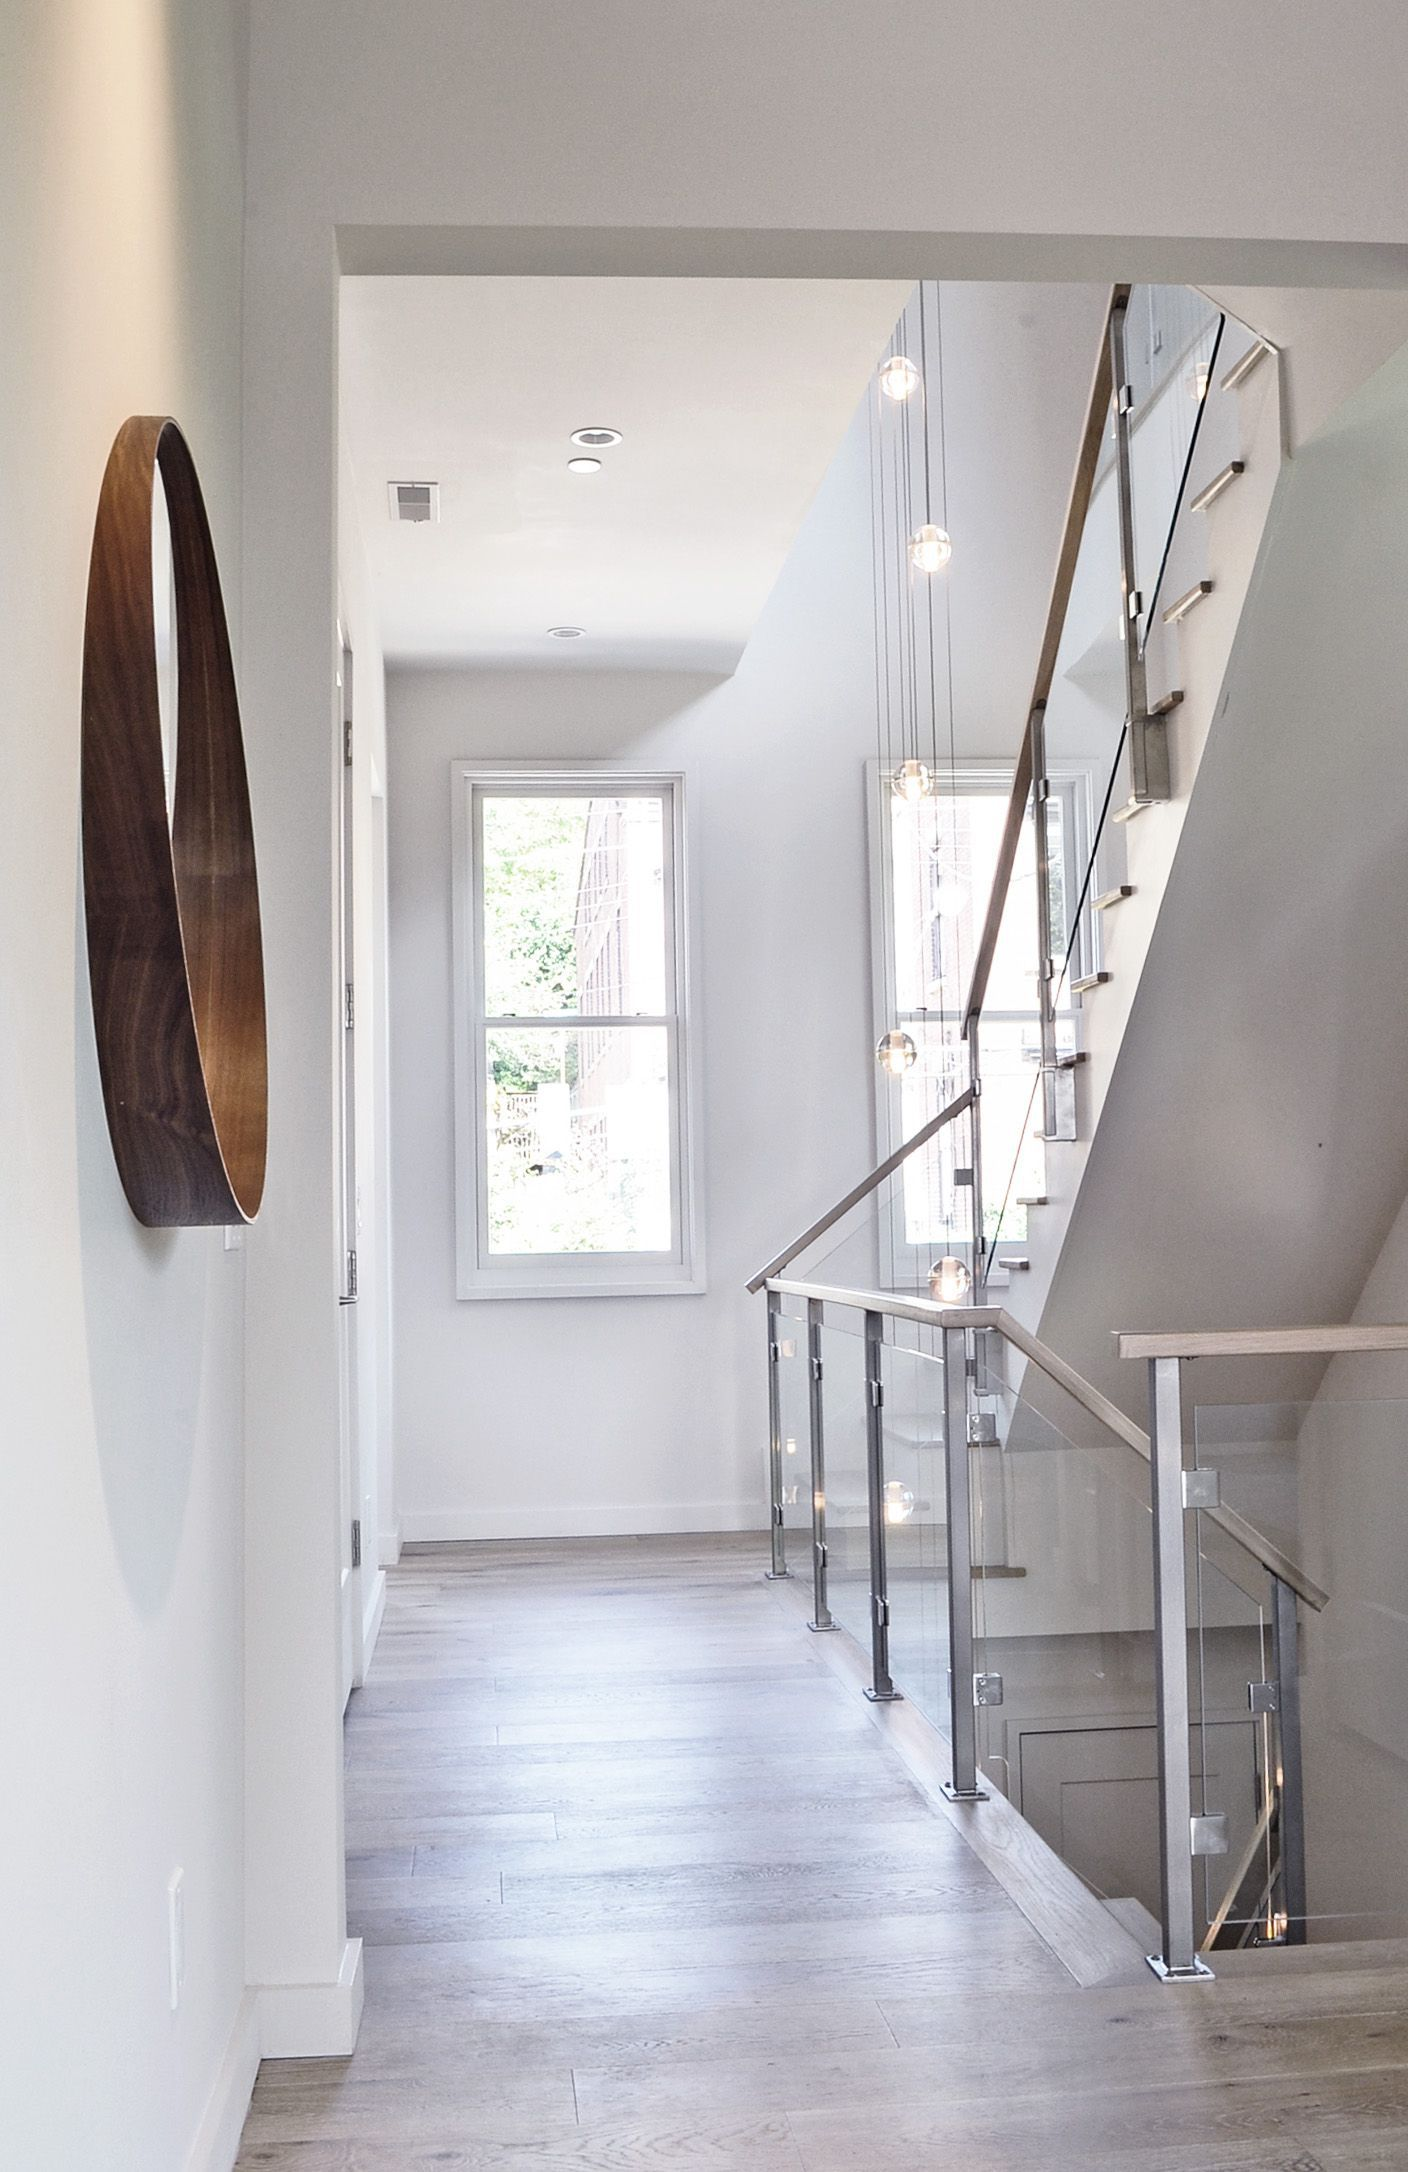 Custom modern steel staircase and railings by Cincinnati Interior Designer, RM Interiors.